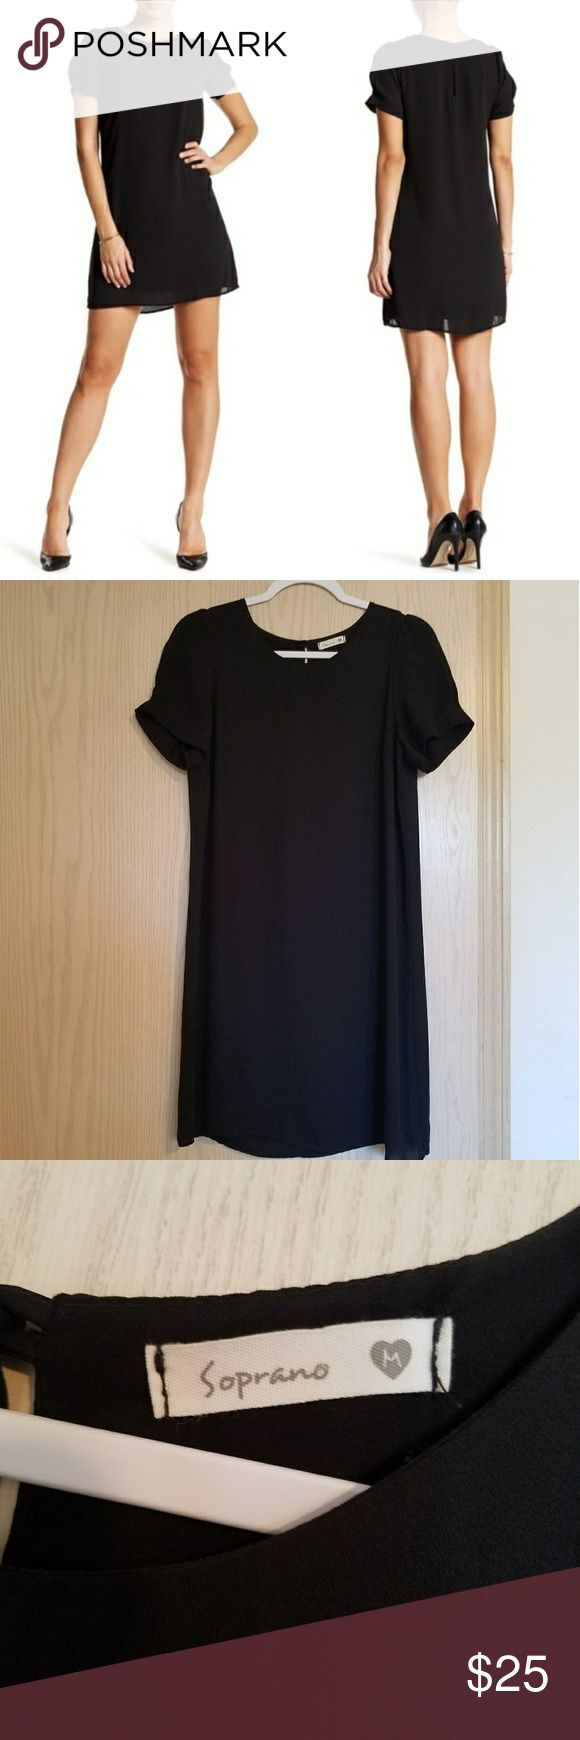 "Soprano little black dress - Crew neck - Short sleeves - Back keyhole detail - Button closure - Fully lined - Approx. 35"" length - Made in USA  - 100% polyester Worn once or twice, perfect dress for any sort of occasion! Soprano Dresses"